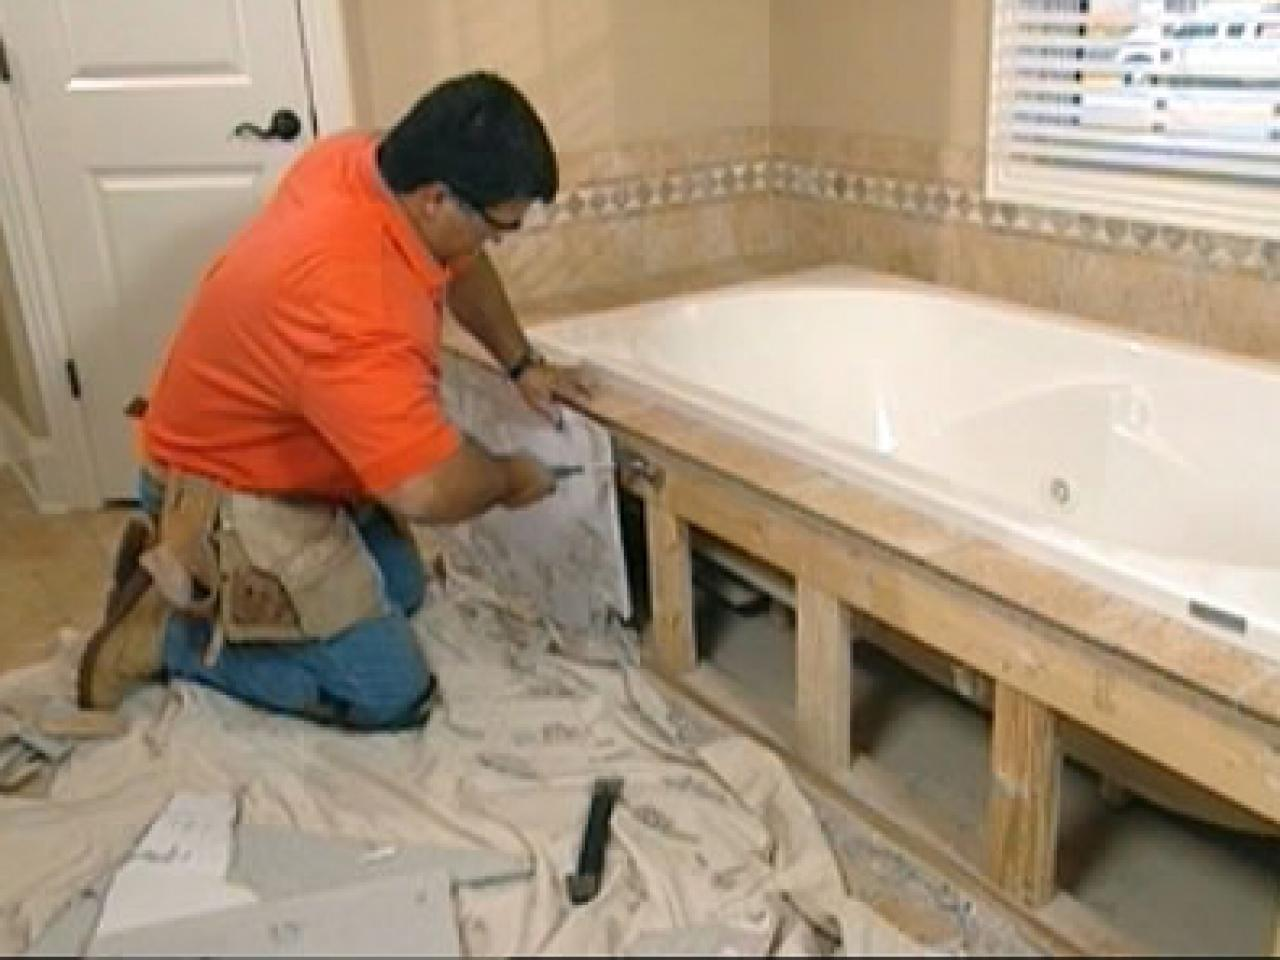 Claw Foot Tub Installation Surround Demolition How Tos Diy